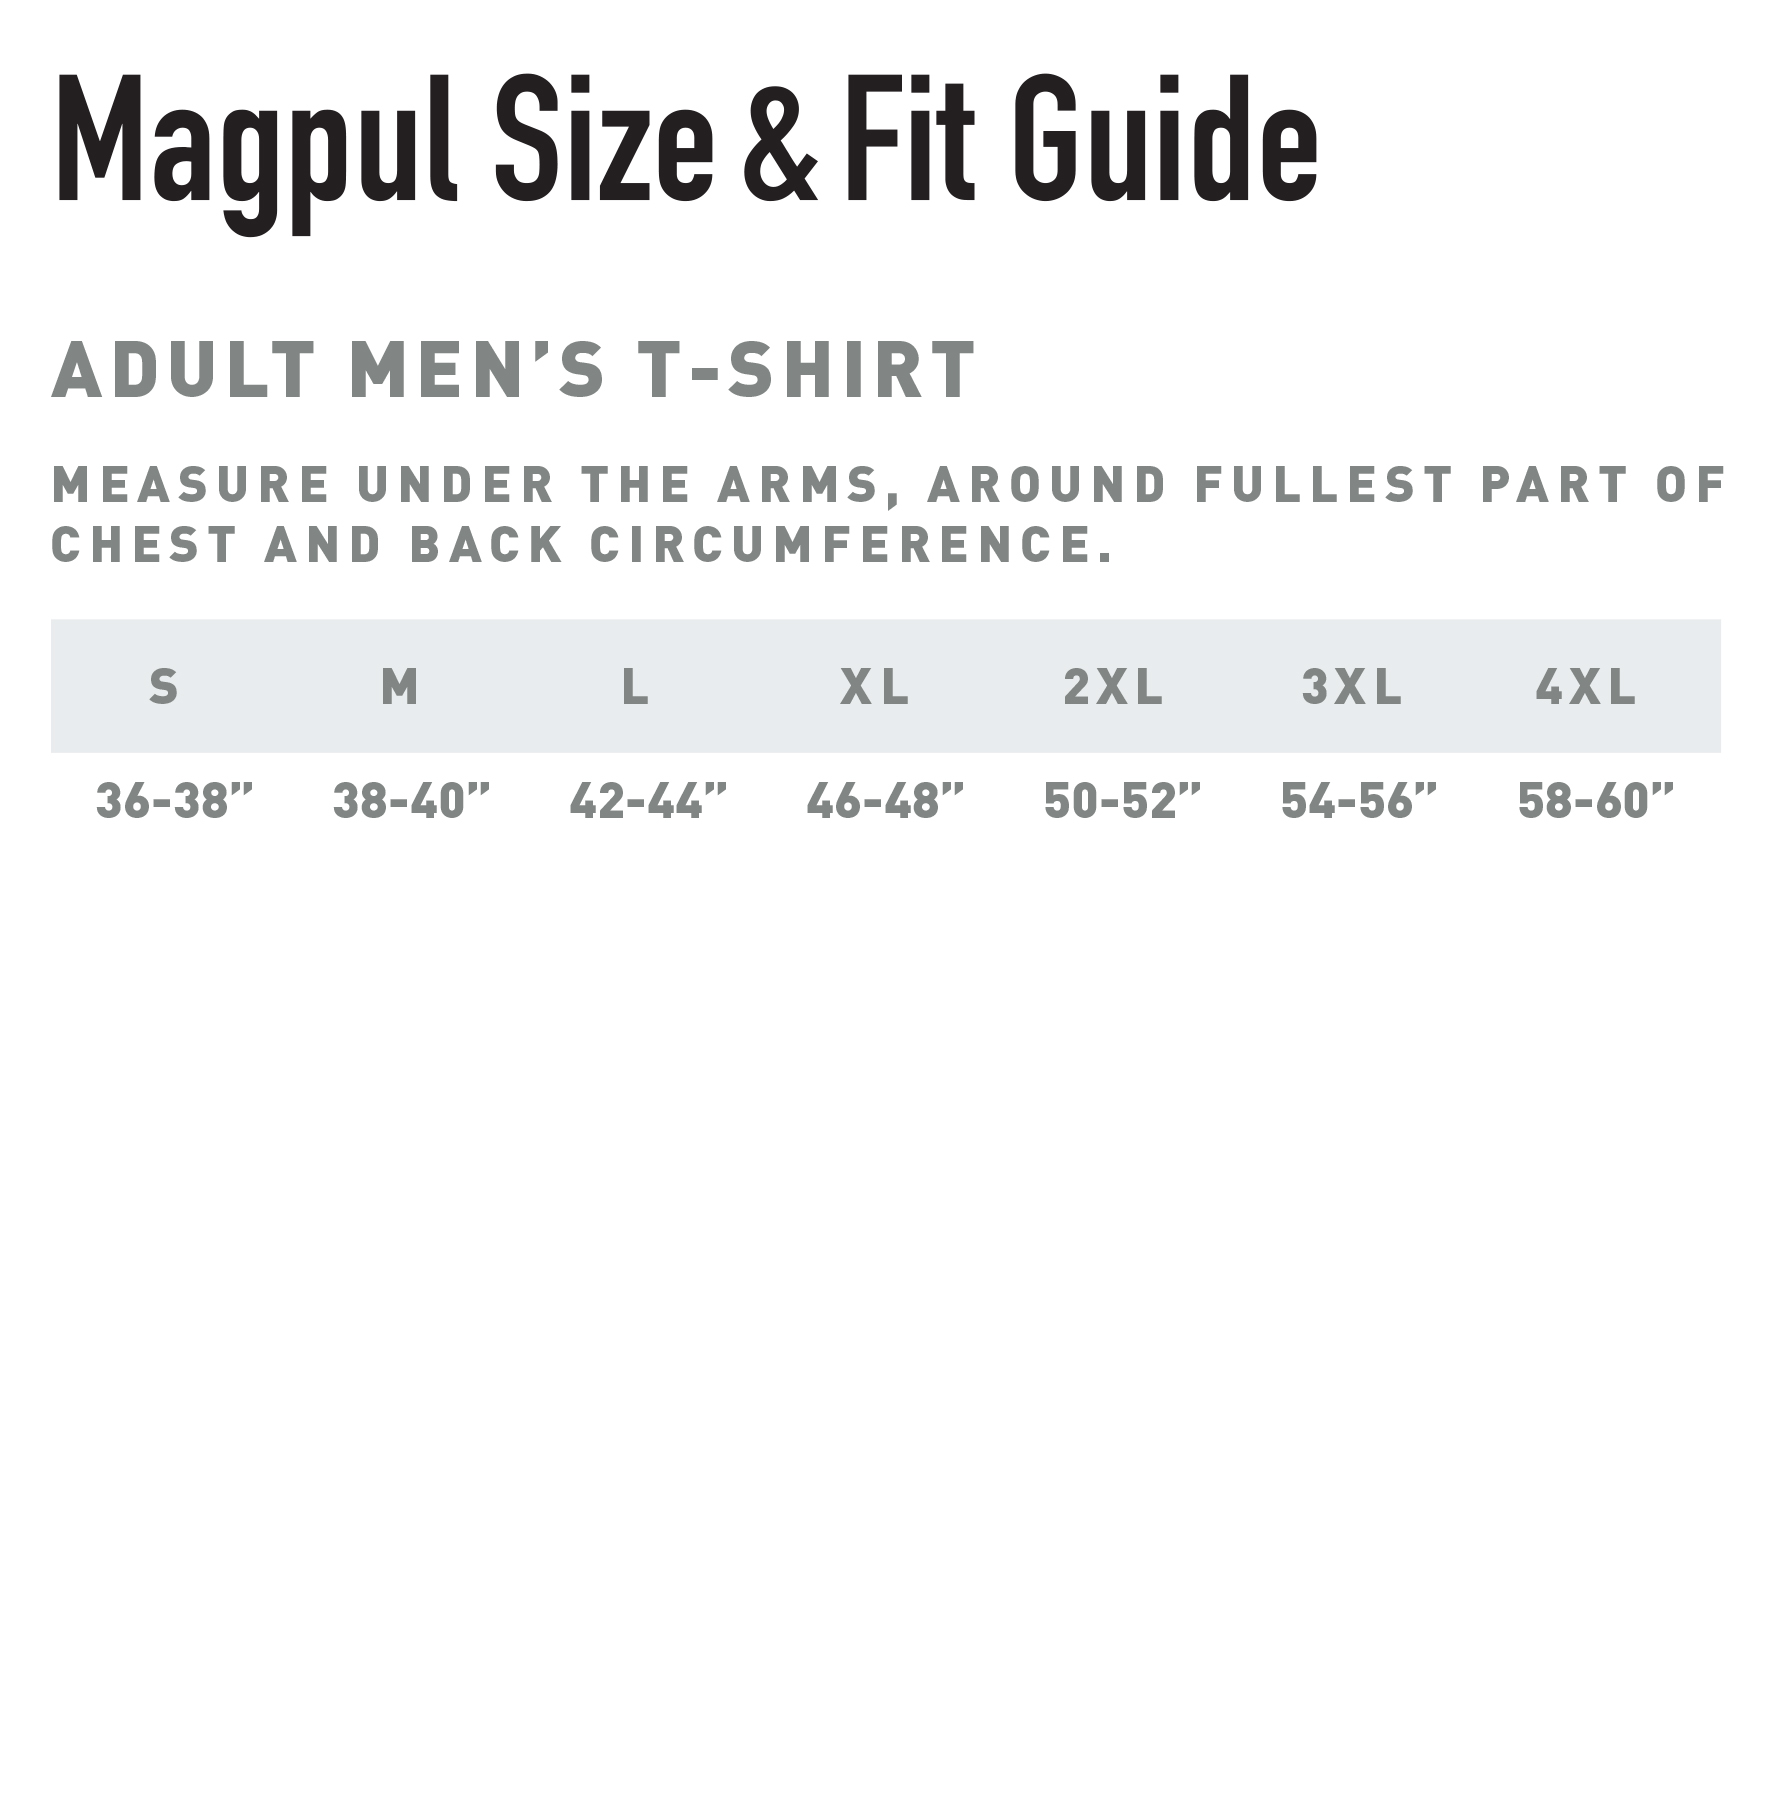 Magpul Men's Size Chart for T-Shirts